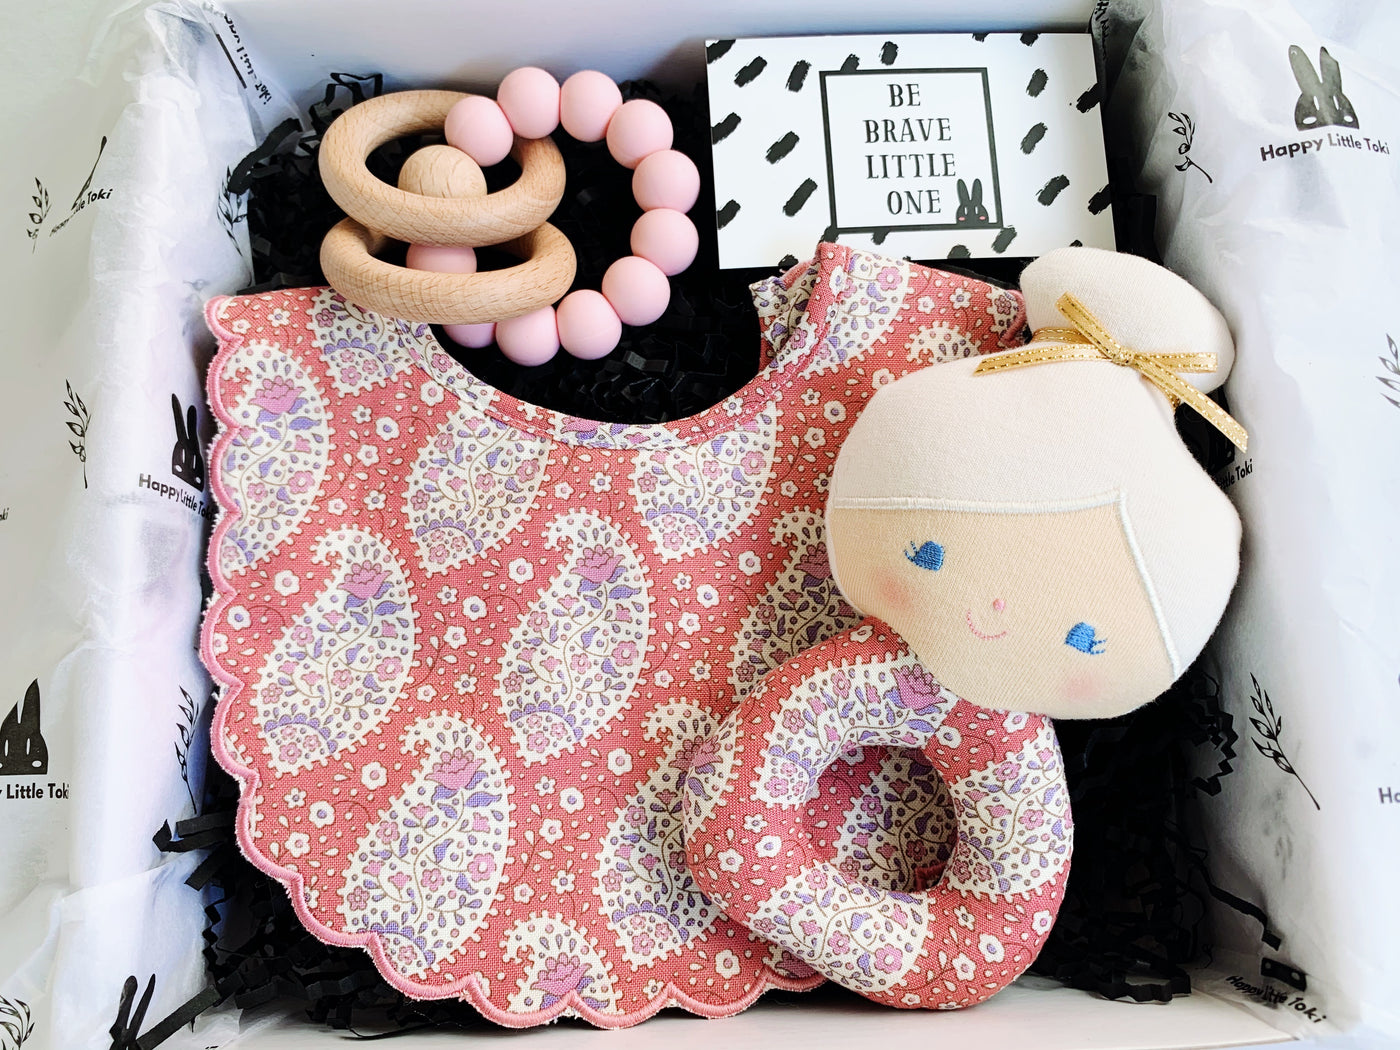 Baby Doll Pink Gift Set